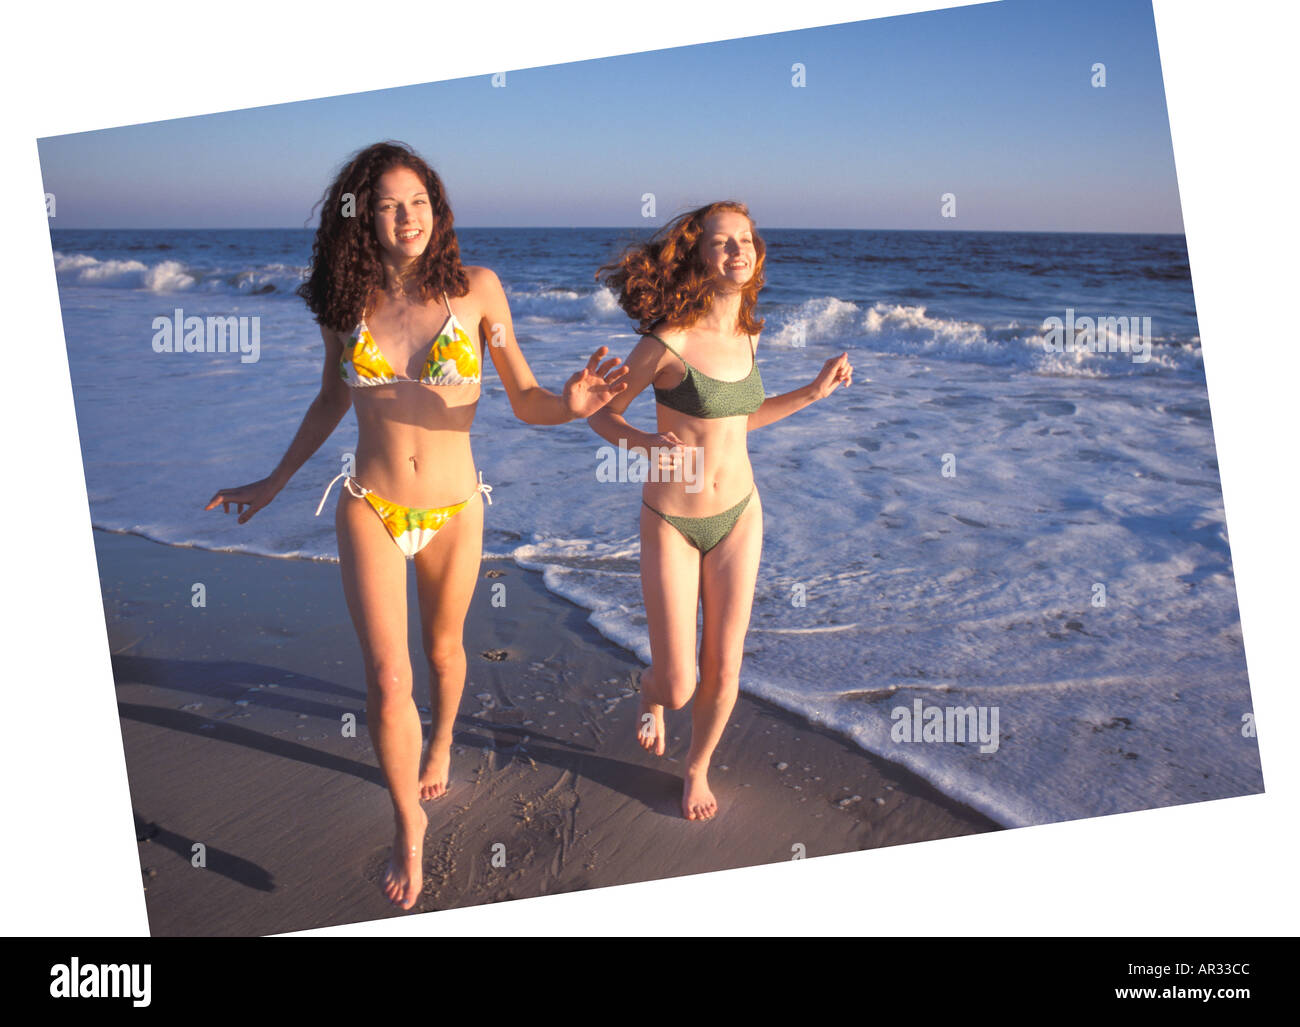 Girls 2 girls running on beach h - Stock Image